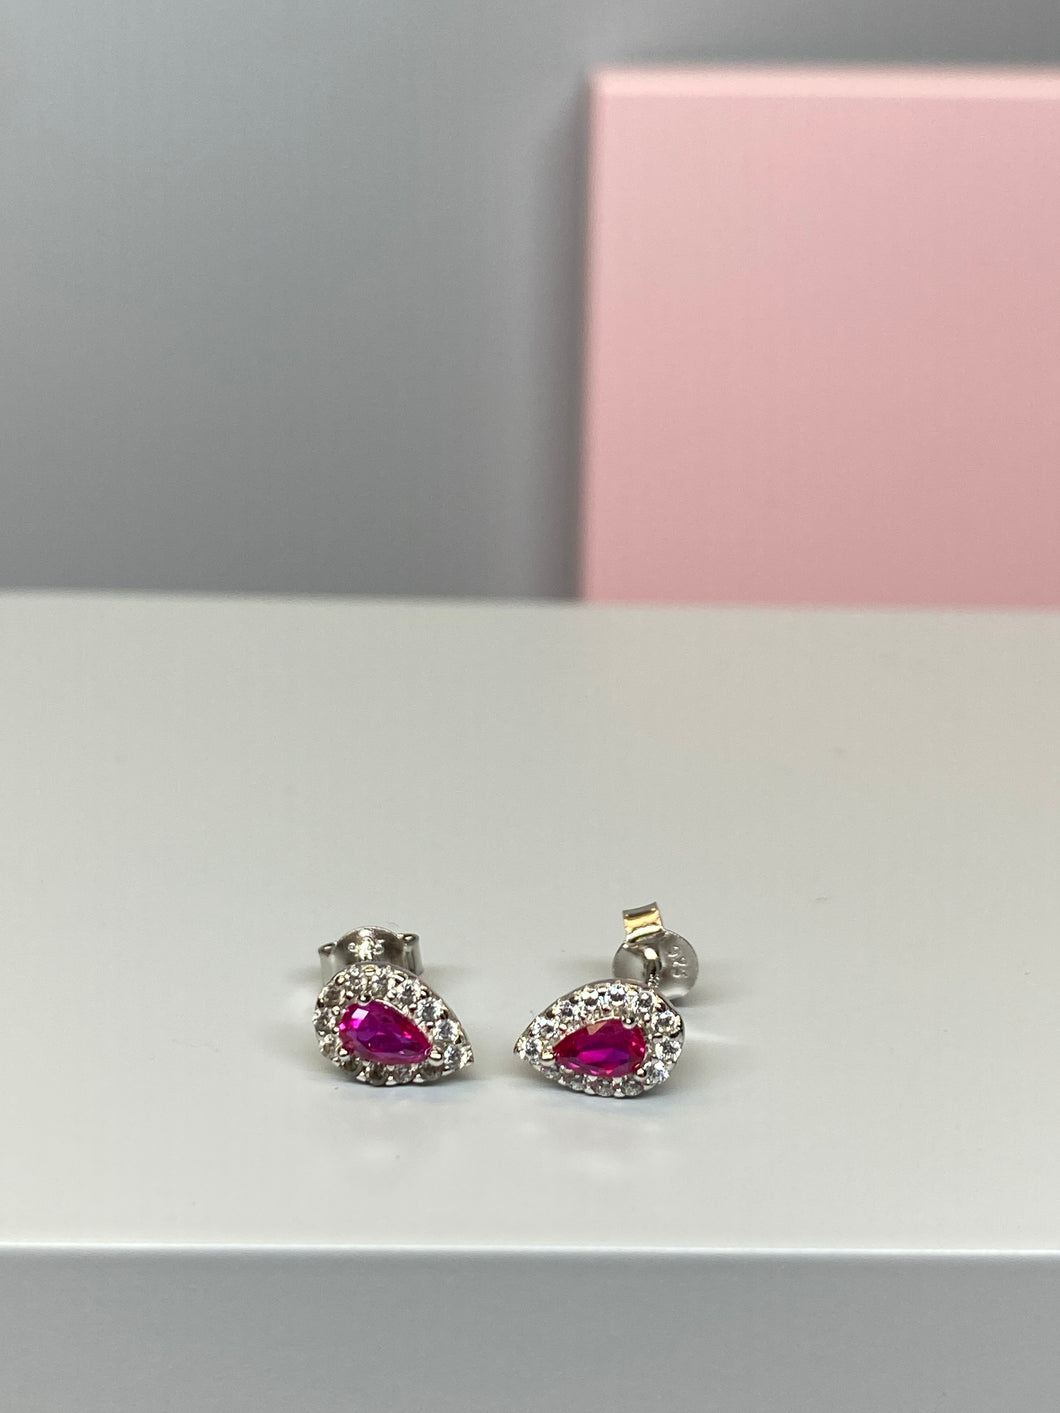 Sterling Silver Pear Shaped Pink and CZ Earrings